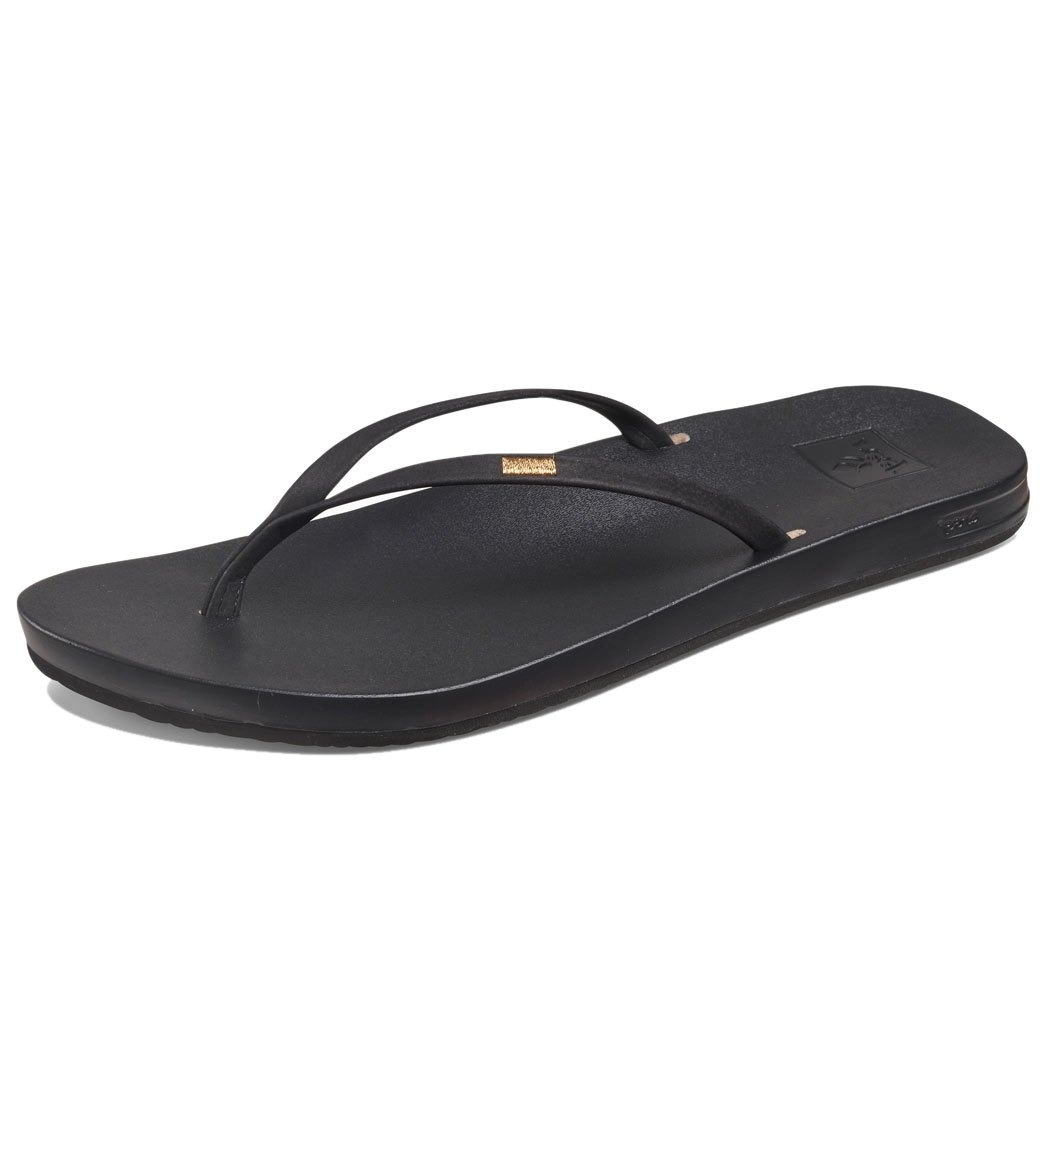 e35296866178 Reef Women s Cushion Bounce Slim Flip Flop at SwimOutlet.com